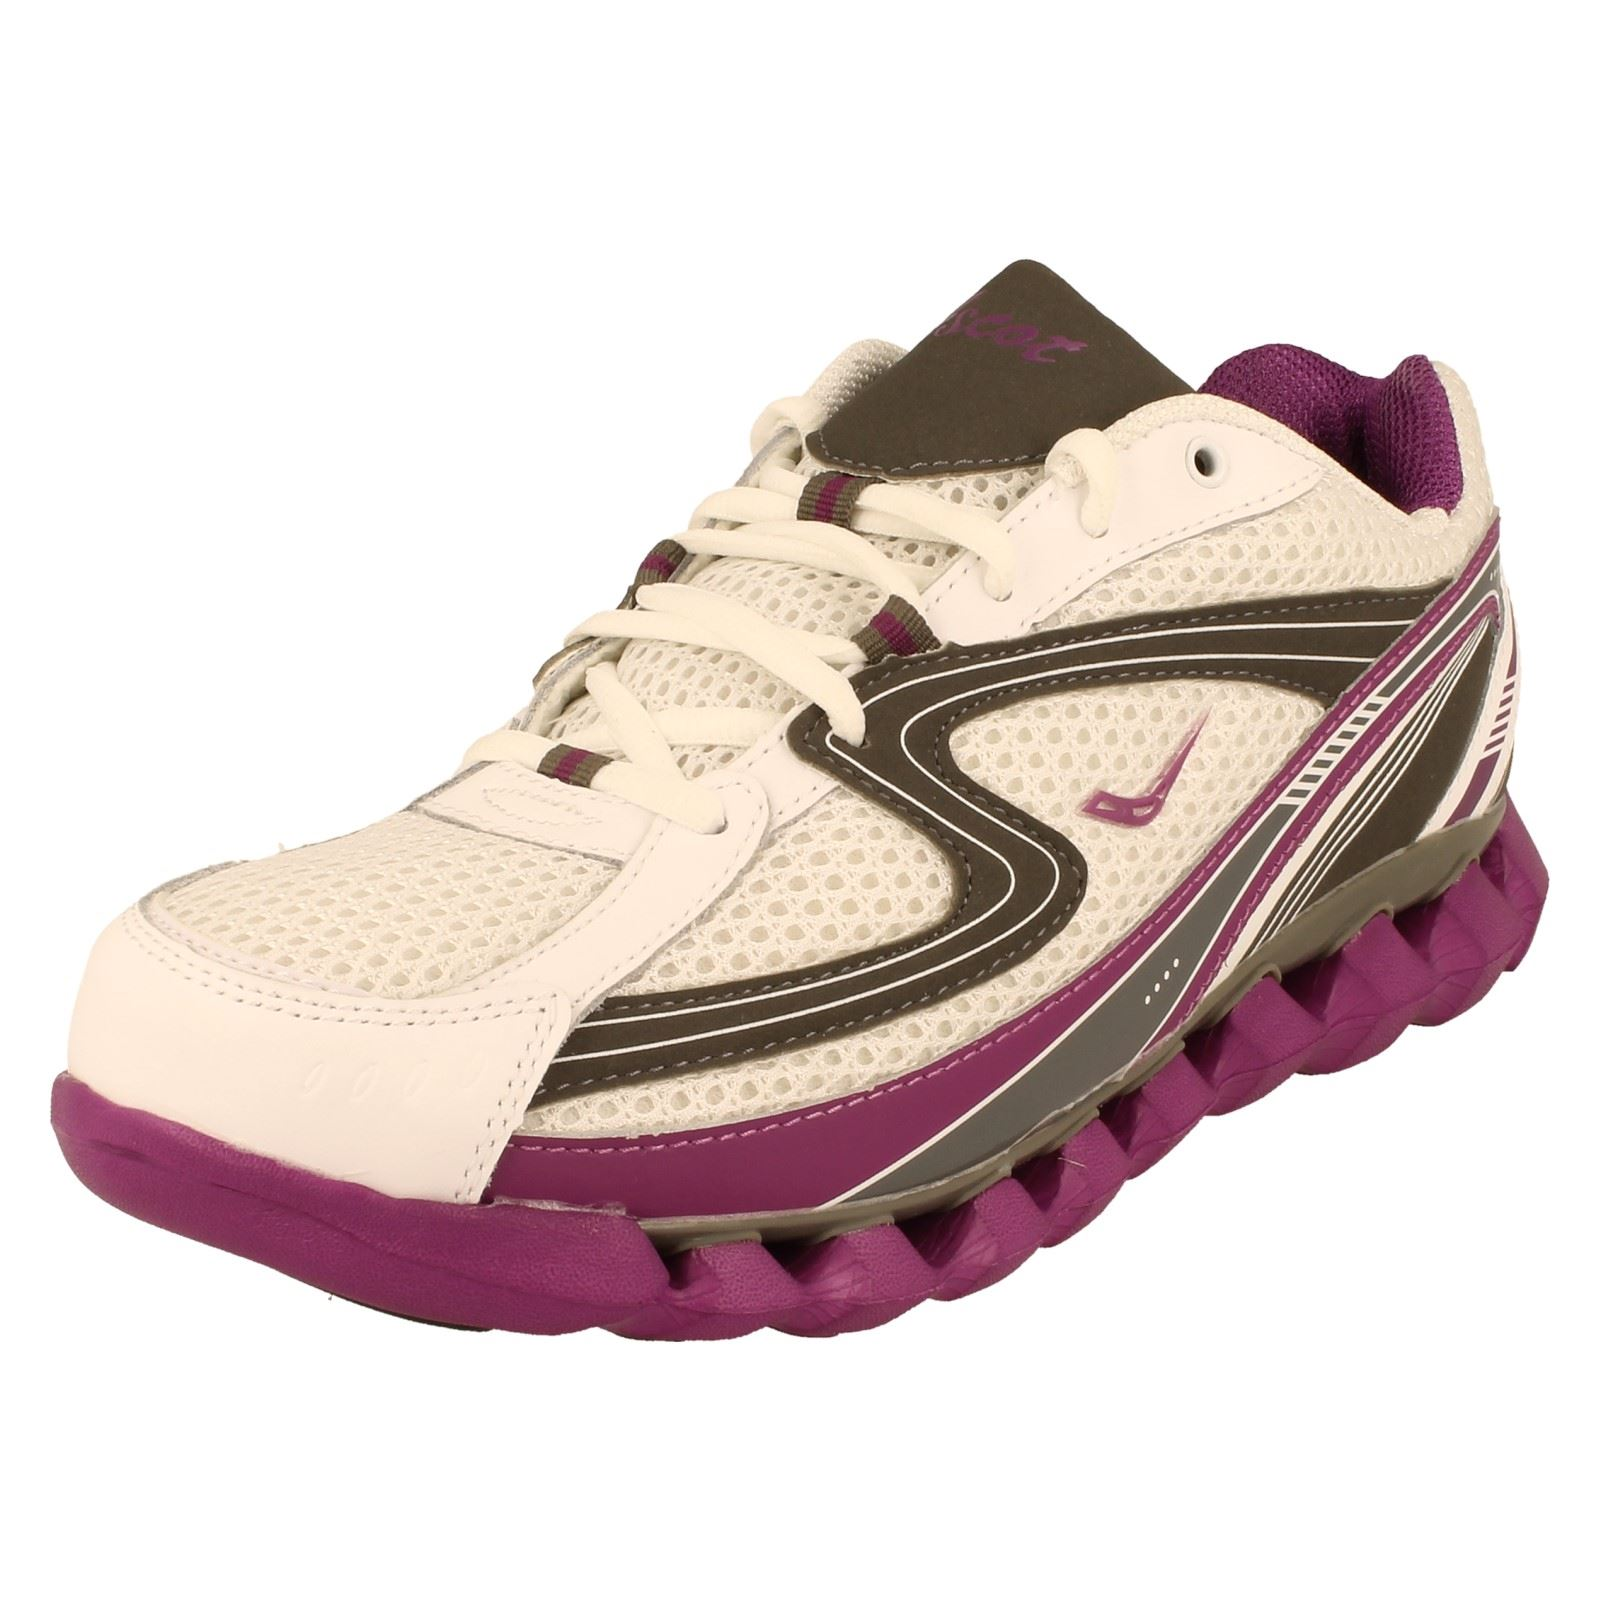 Ladies Ascot Lace Up Trainers in 2 Colours Style SPRING WAVE